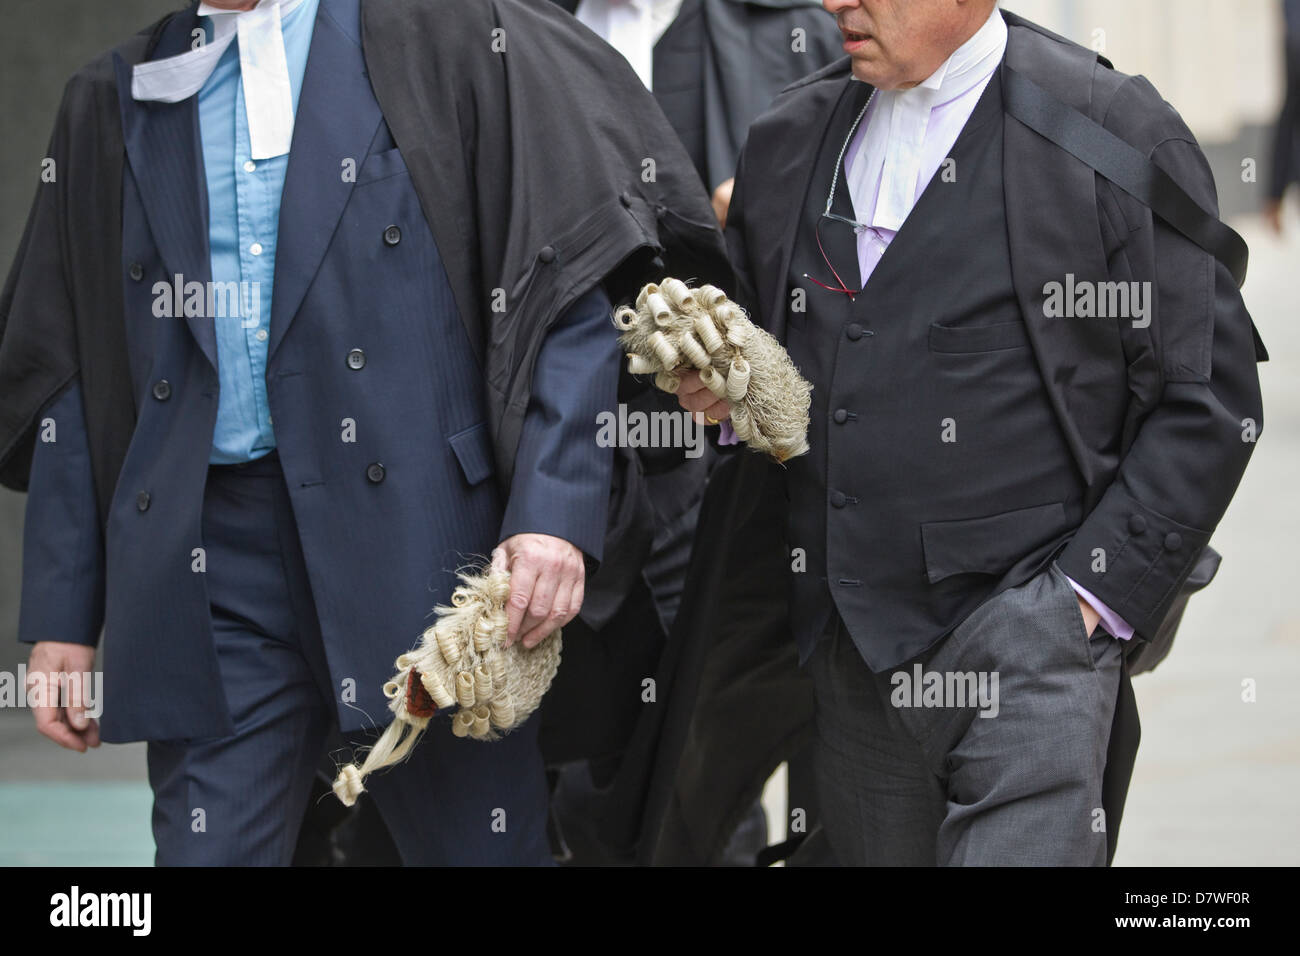 Barristers QC arriving at Court, London, UK - Stock Image